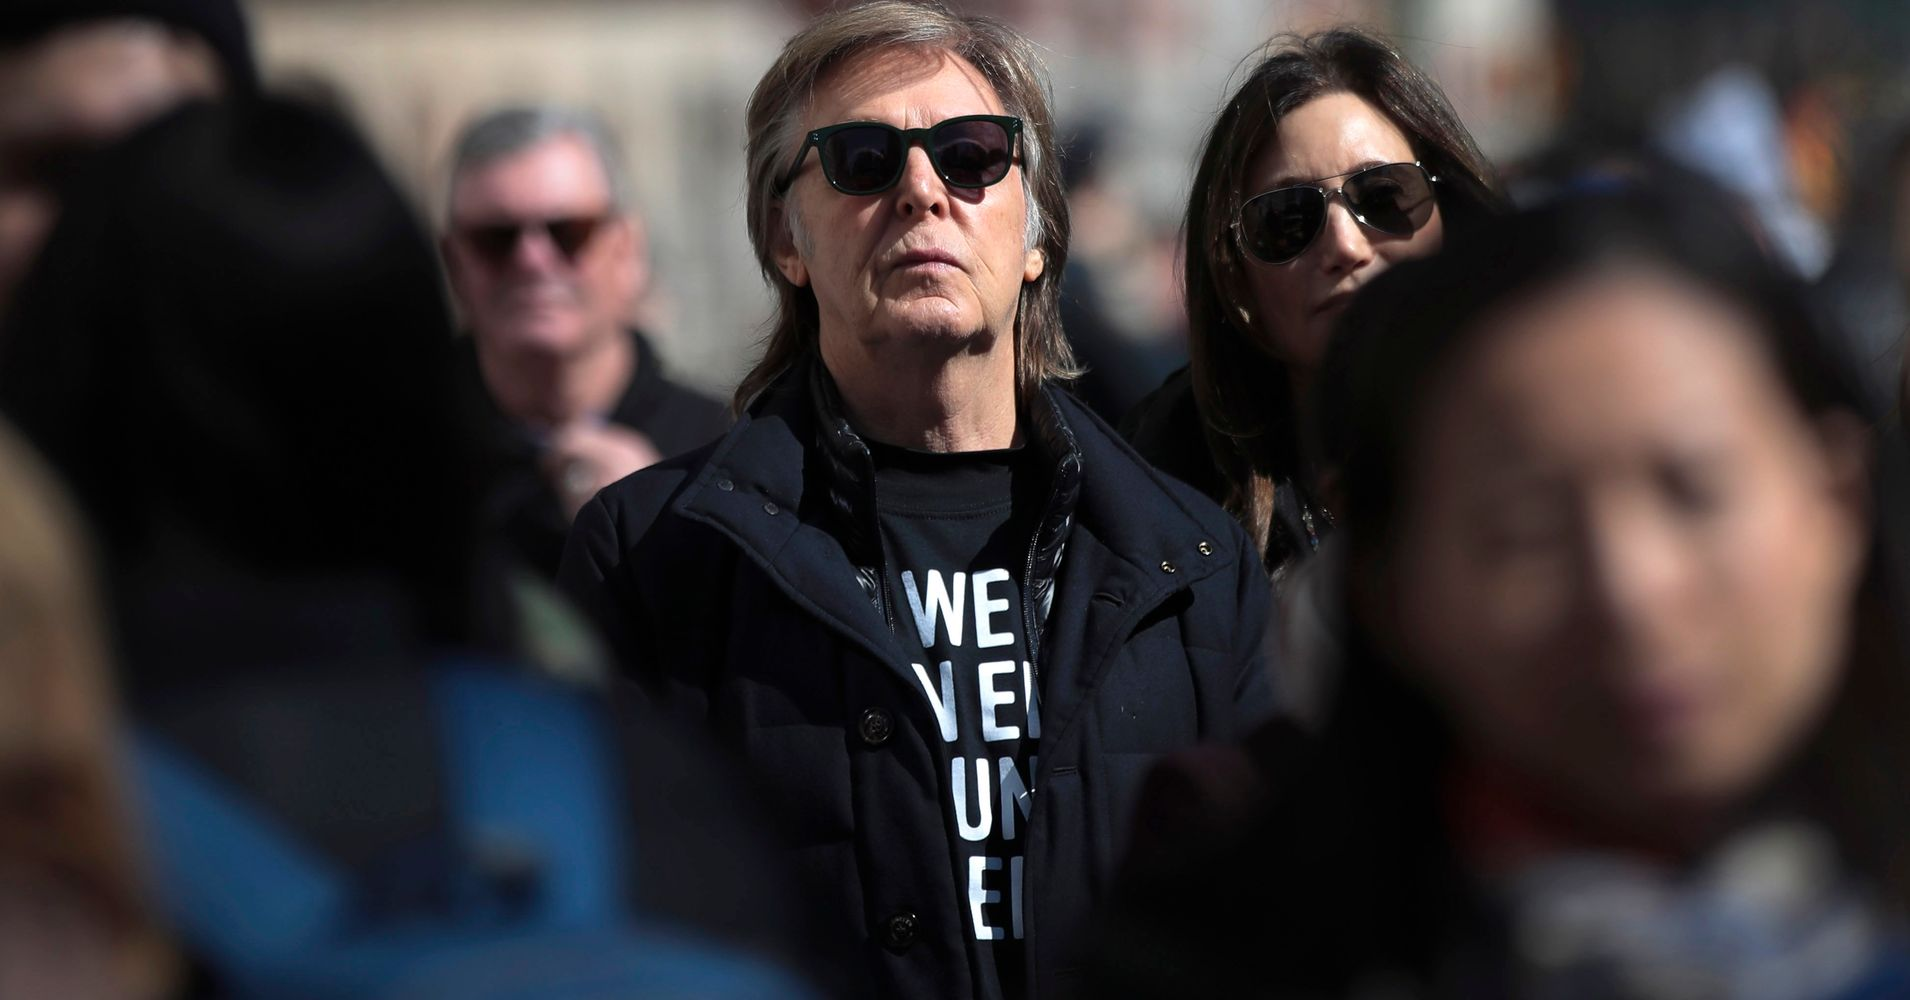 Paul McCartney Joins March For Our Lives In Memory Of John Lennon